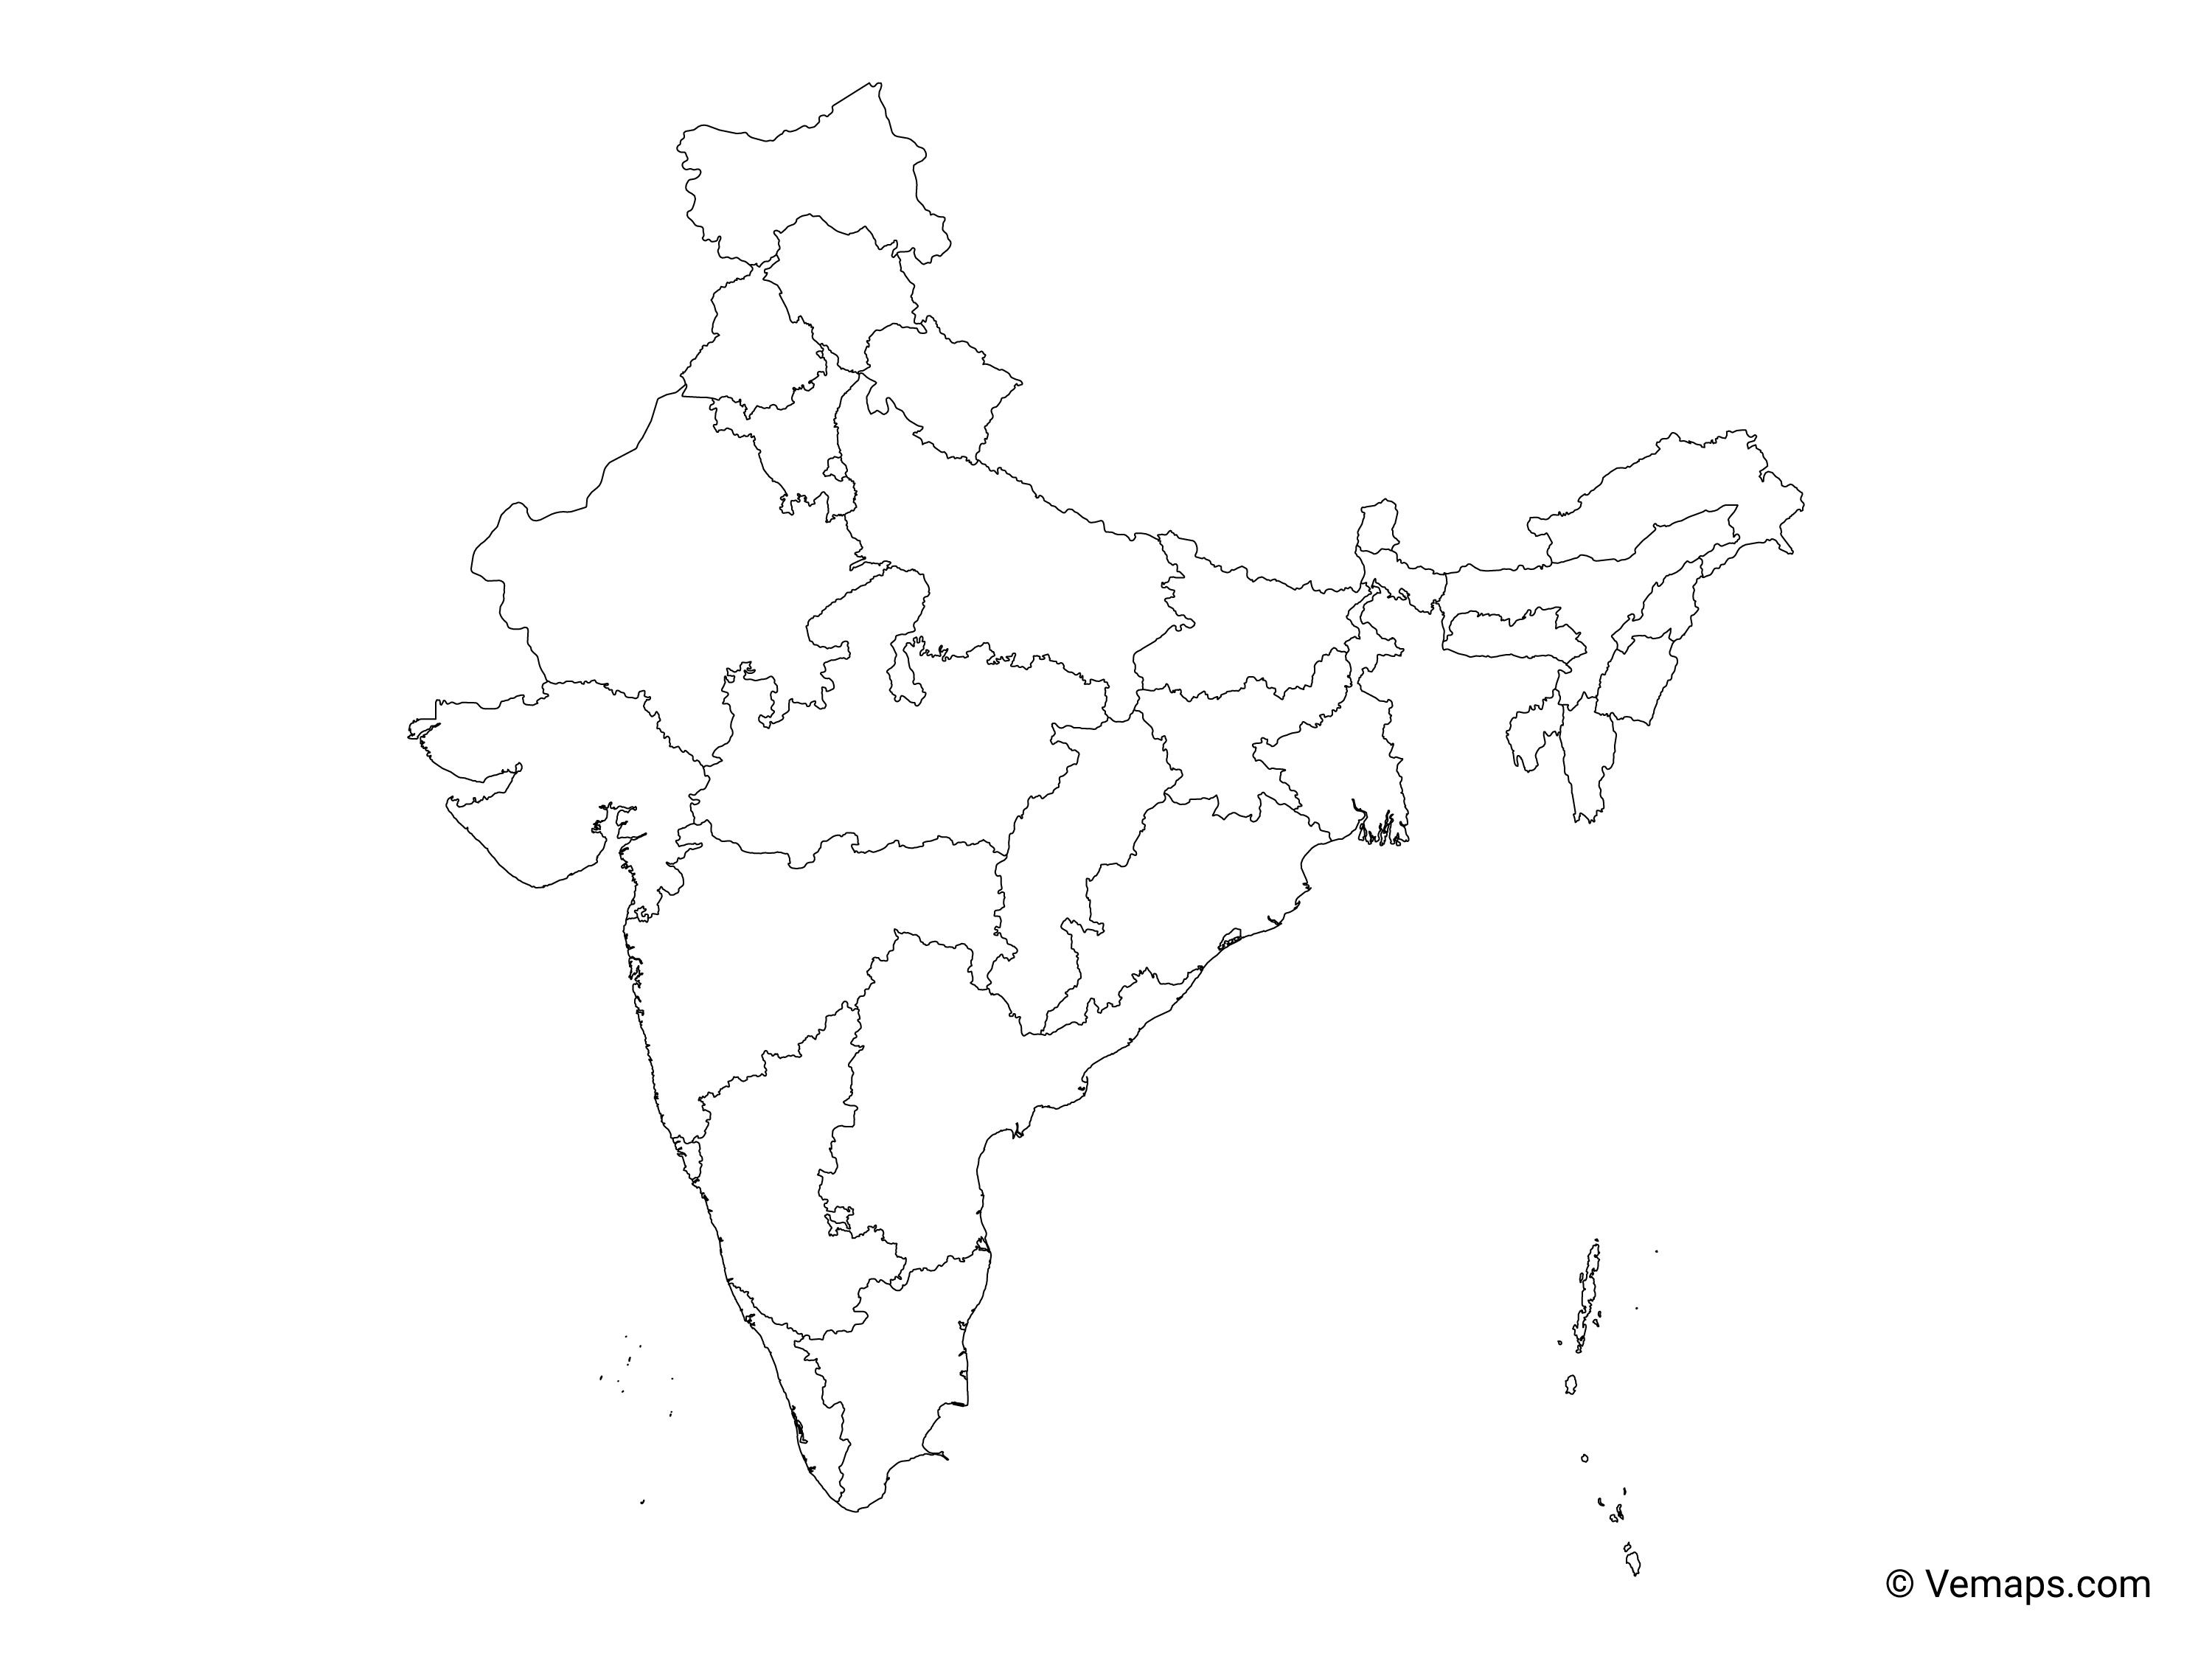 india map with states outline Outline Map Of India With States Free Vector Maps india map with states outline